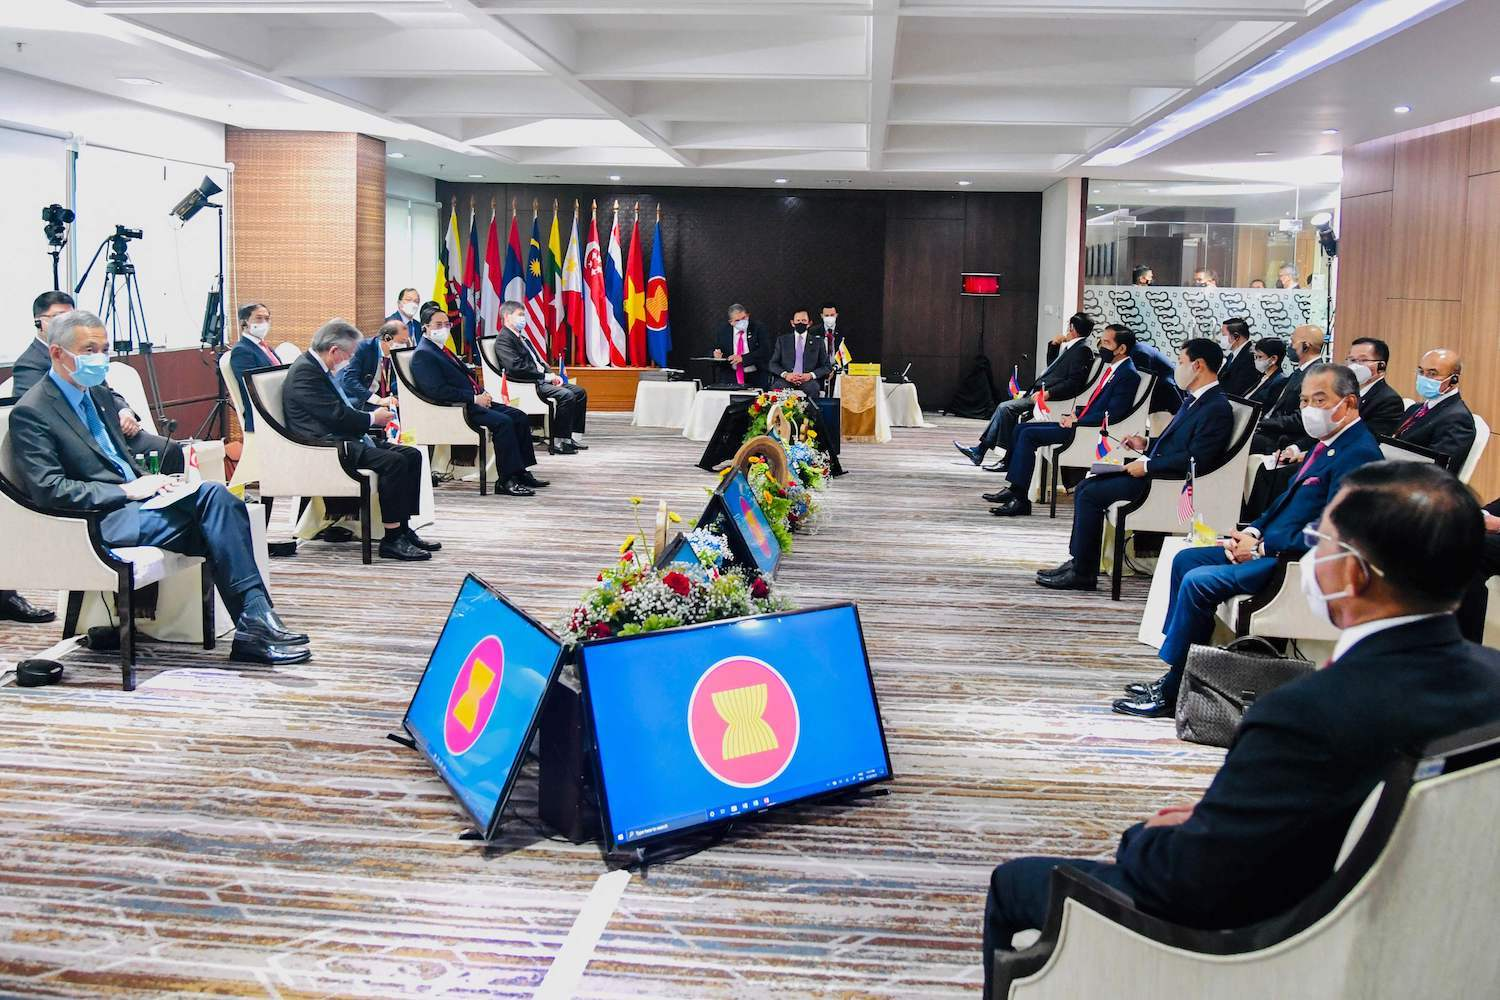 Myanmar junta chief Min Aung Hlaing (bottom right) attends a meeting of Asean leaders seeking to find a way to guide the country out of the crisis he created. (Indonesian Presidential Palace photo via AFP)